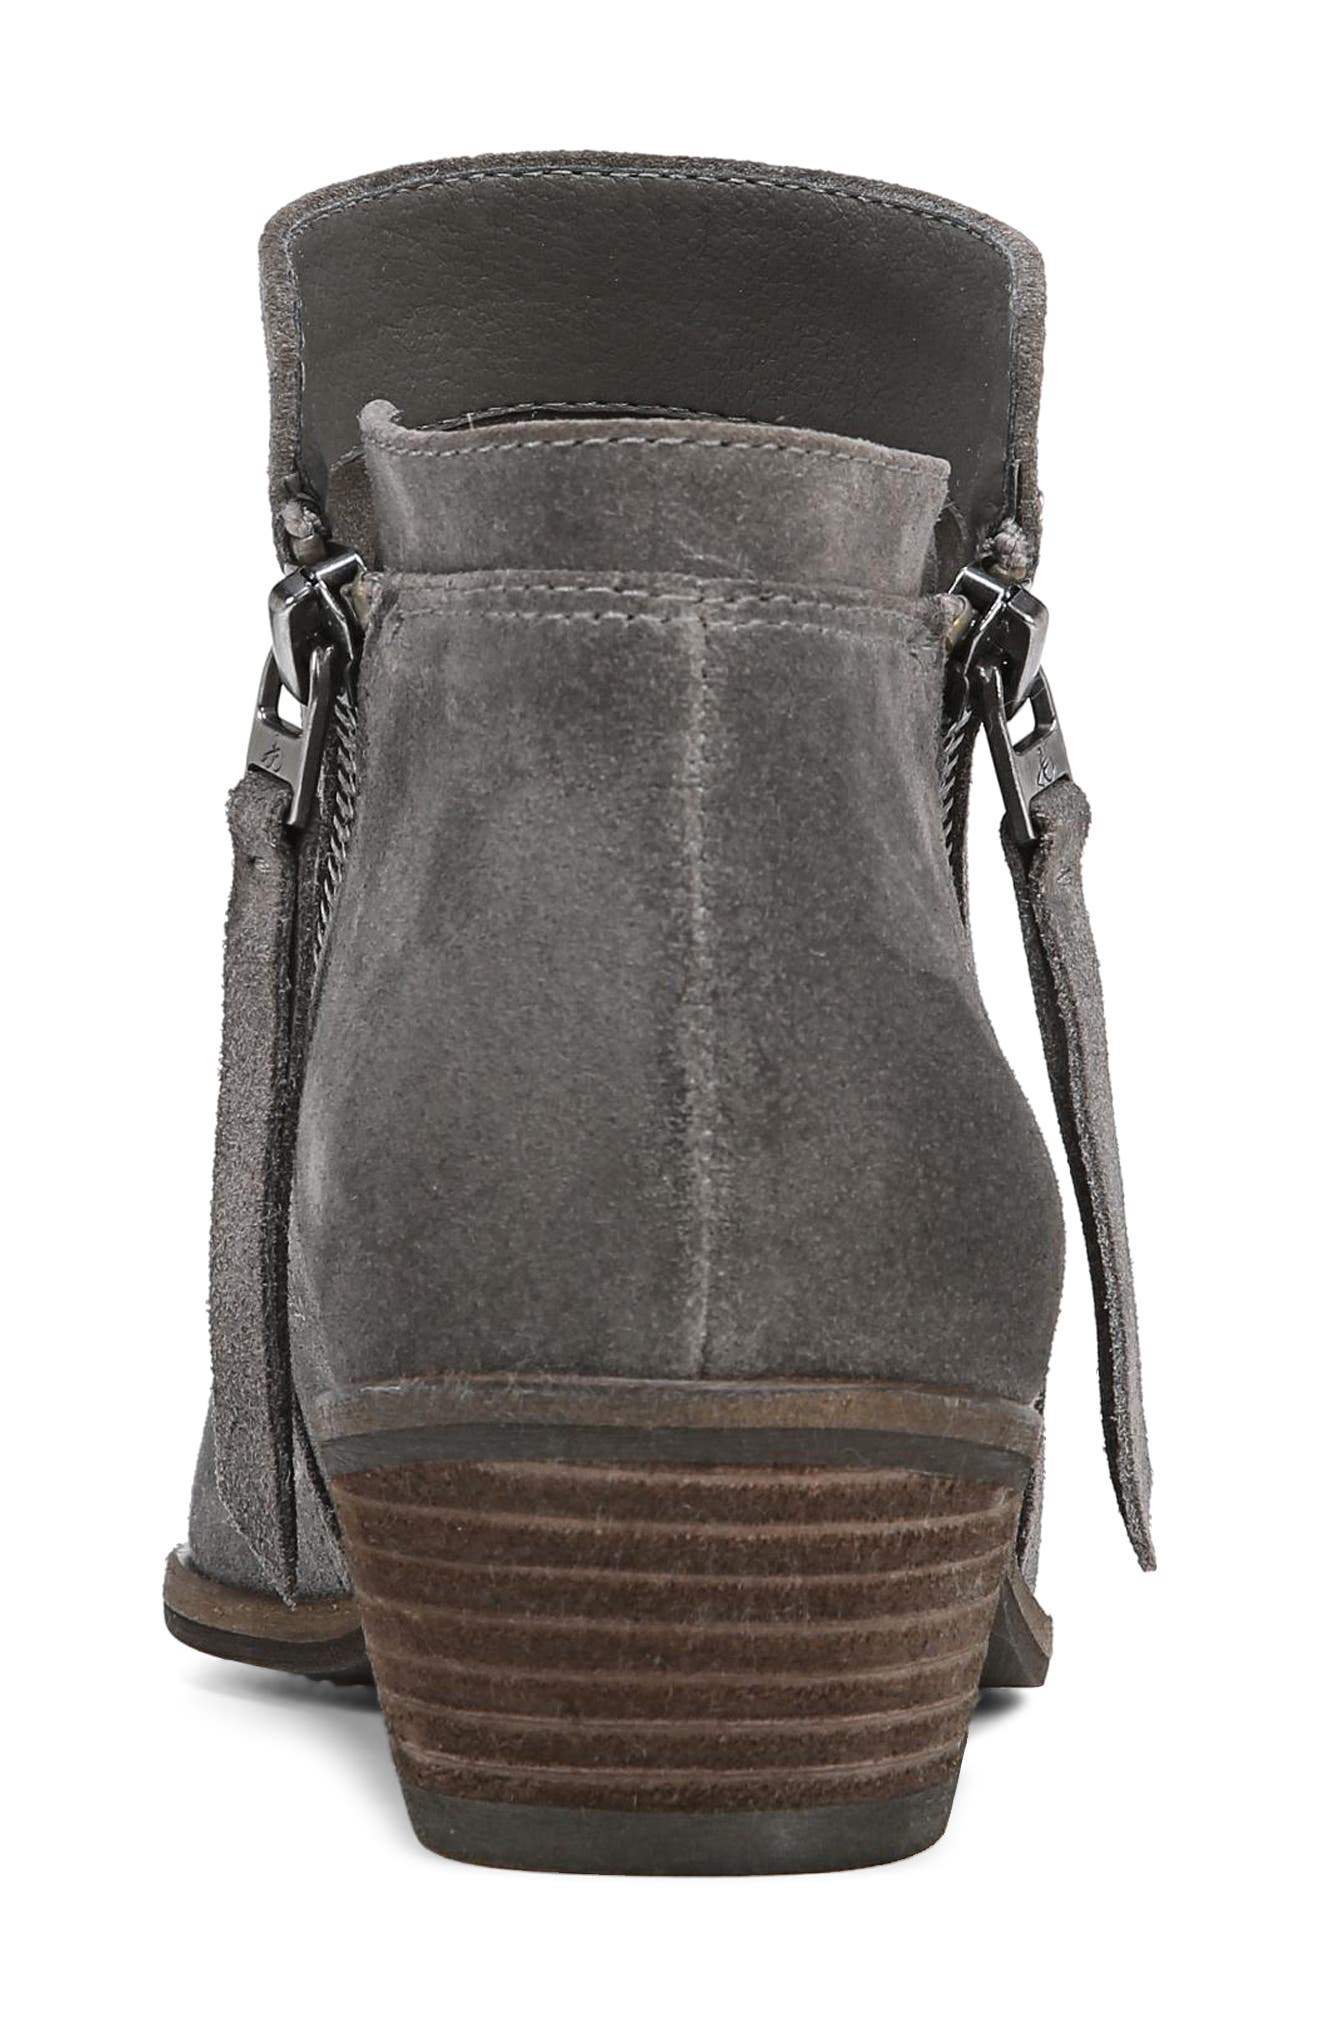 Packer Bootie,                             Alternate thumbnail 8, color,                             STEEL GREY SUEDE LEATHER